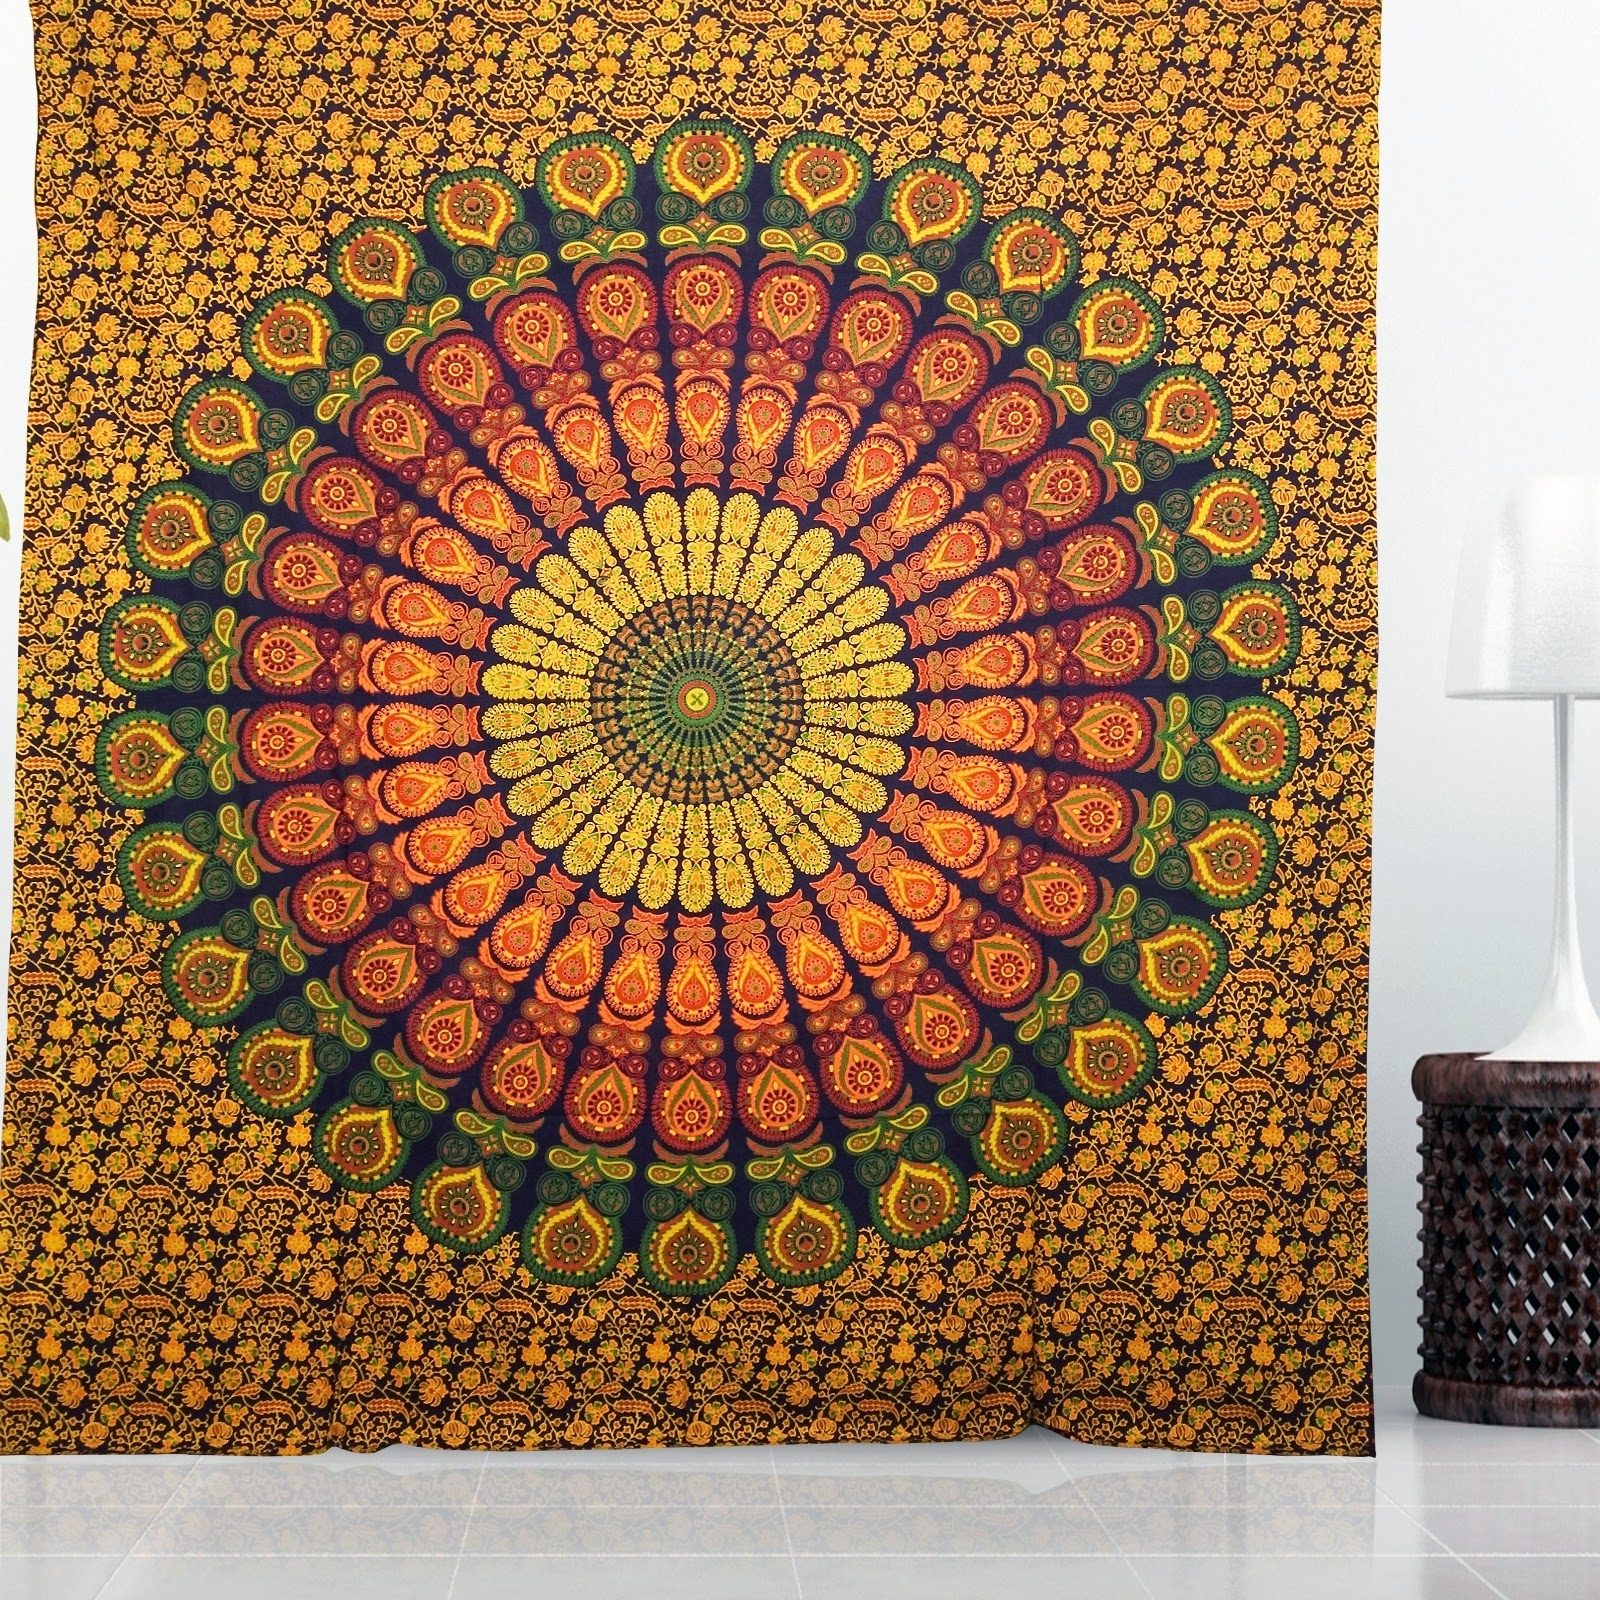 Hippie Tapestries, Mandala Tapestries, Queen Boho Tapestries, Wall Regarding Best And Newest Indian Fabric Wall Art (View 6 of 15)